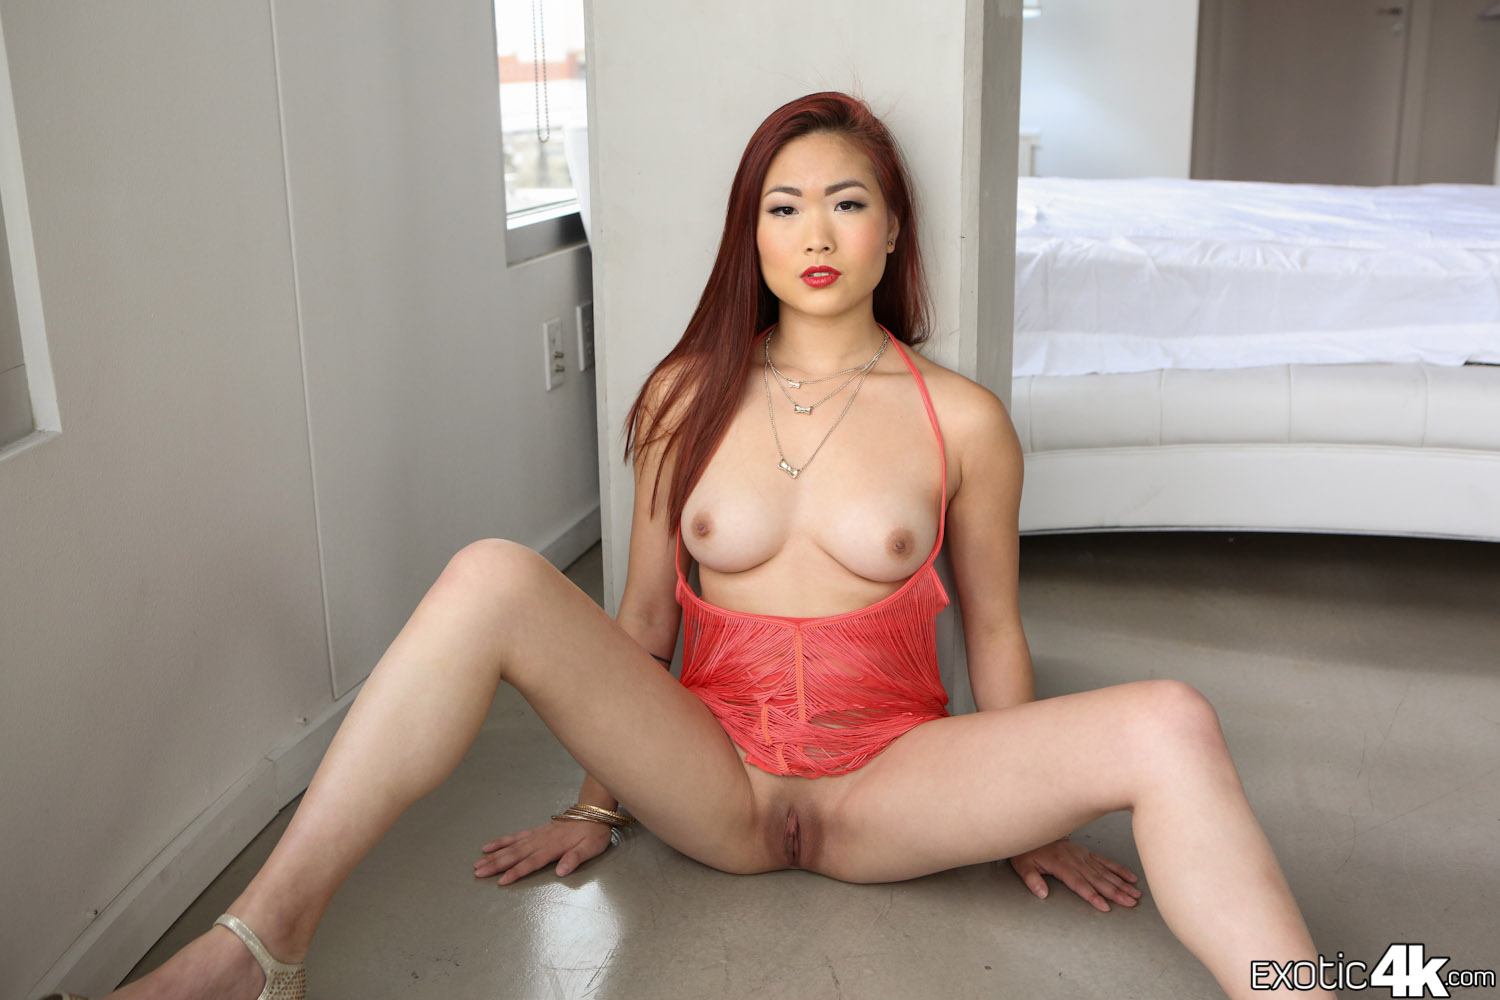 4k exotic4k asian lea hart chokes on dick and rides big cock 9